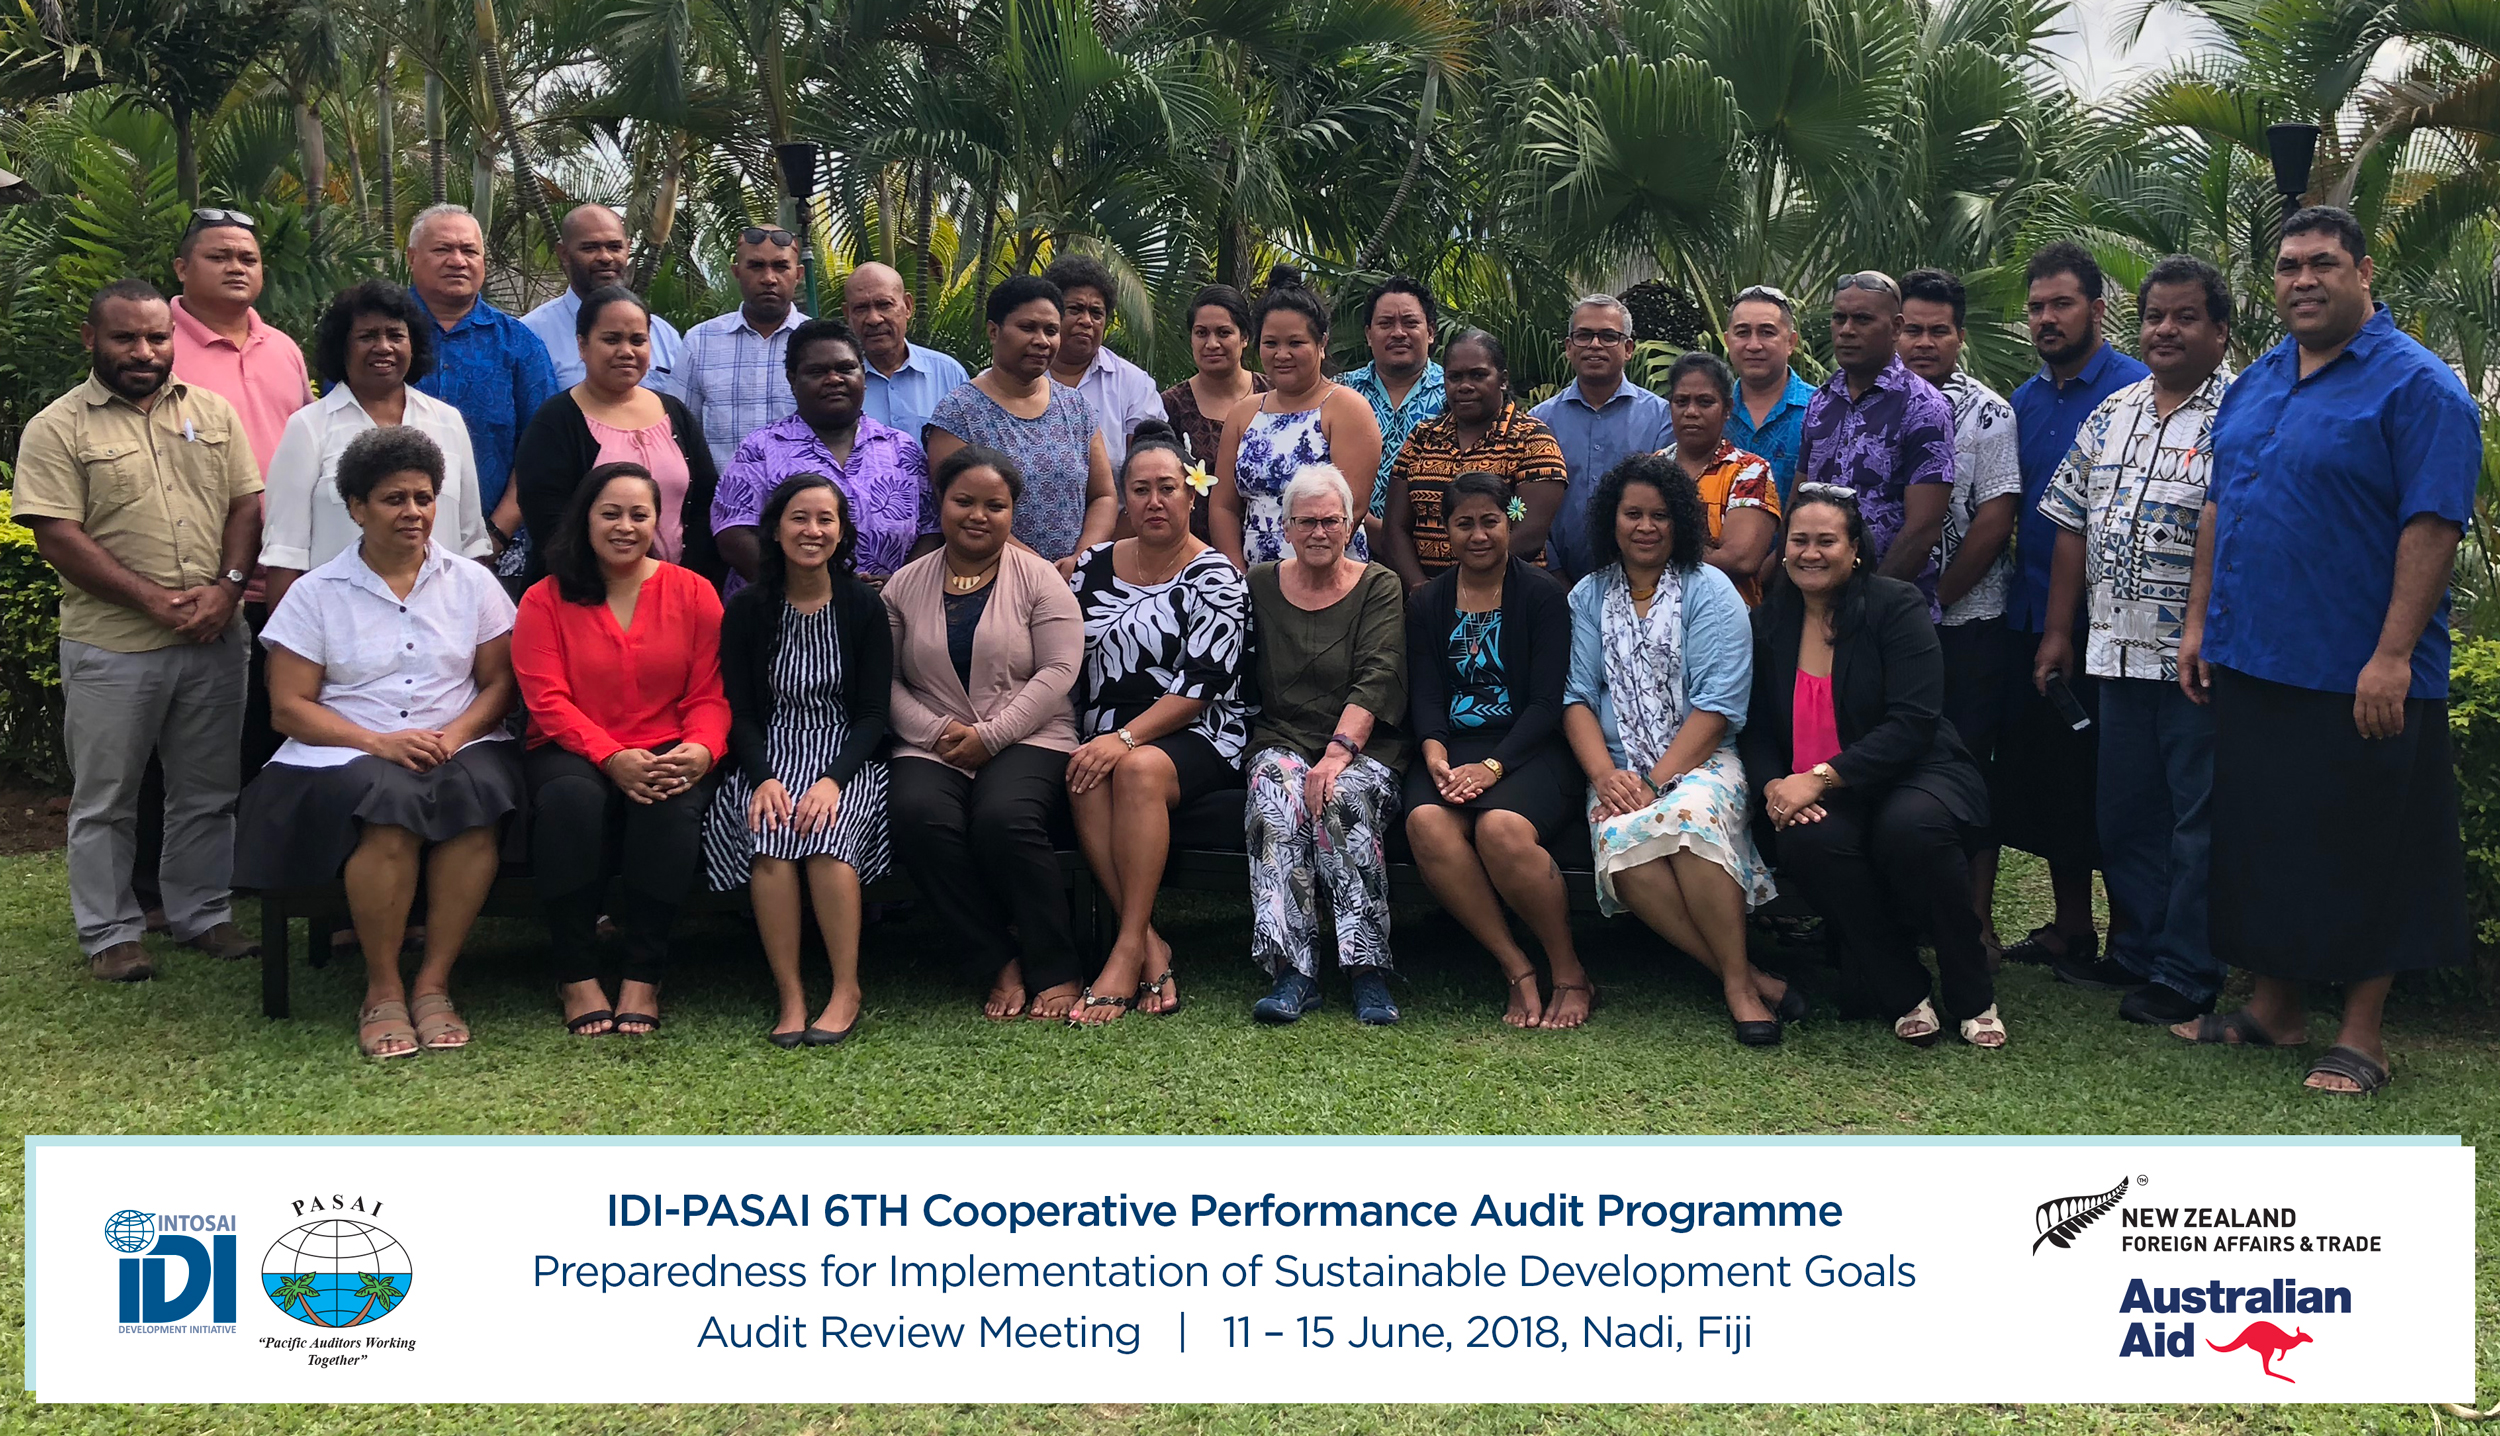 IDI-PASAI_6th CPA SDGs Audit Review Mtg_Official Group Photo.jpg